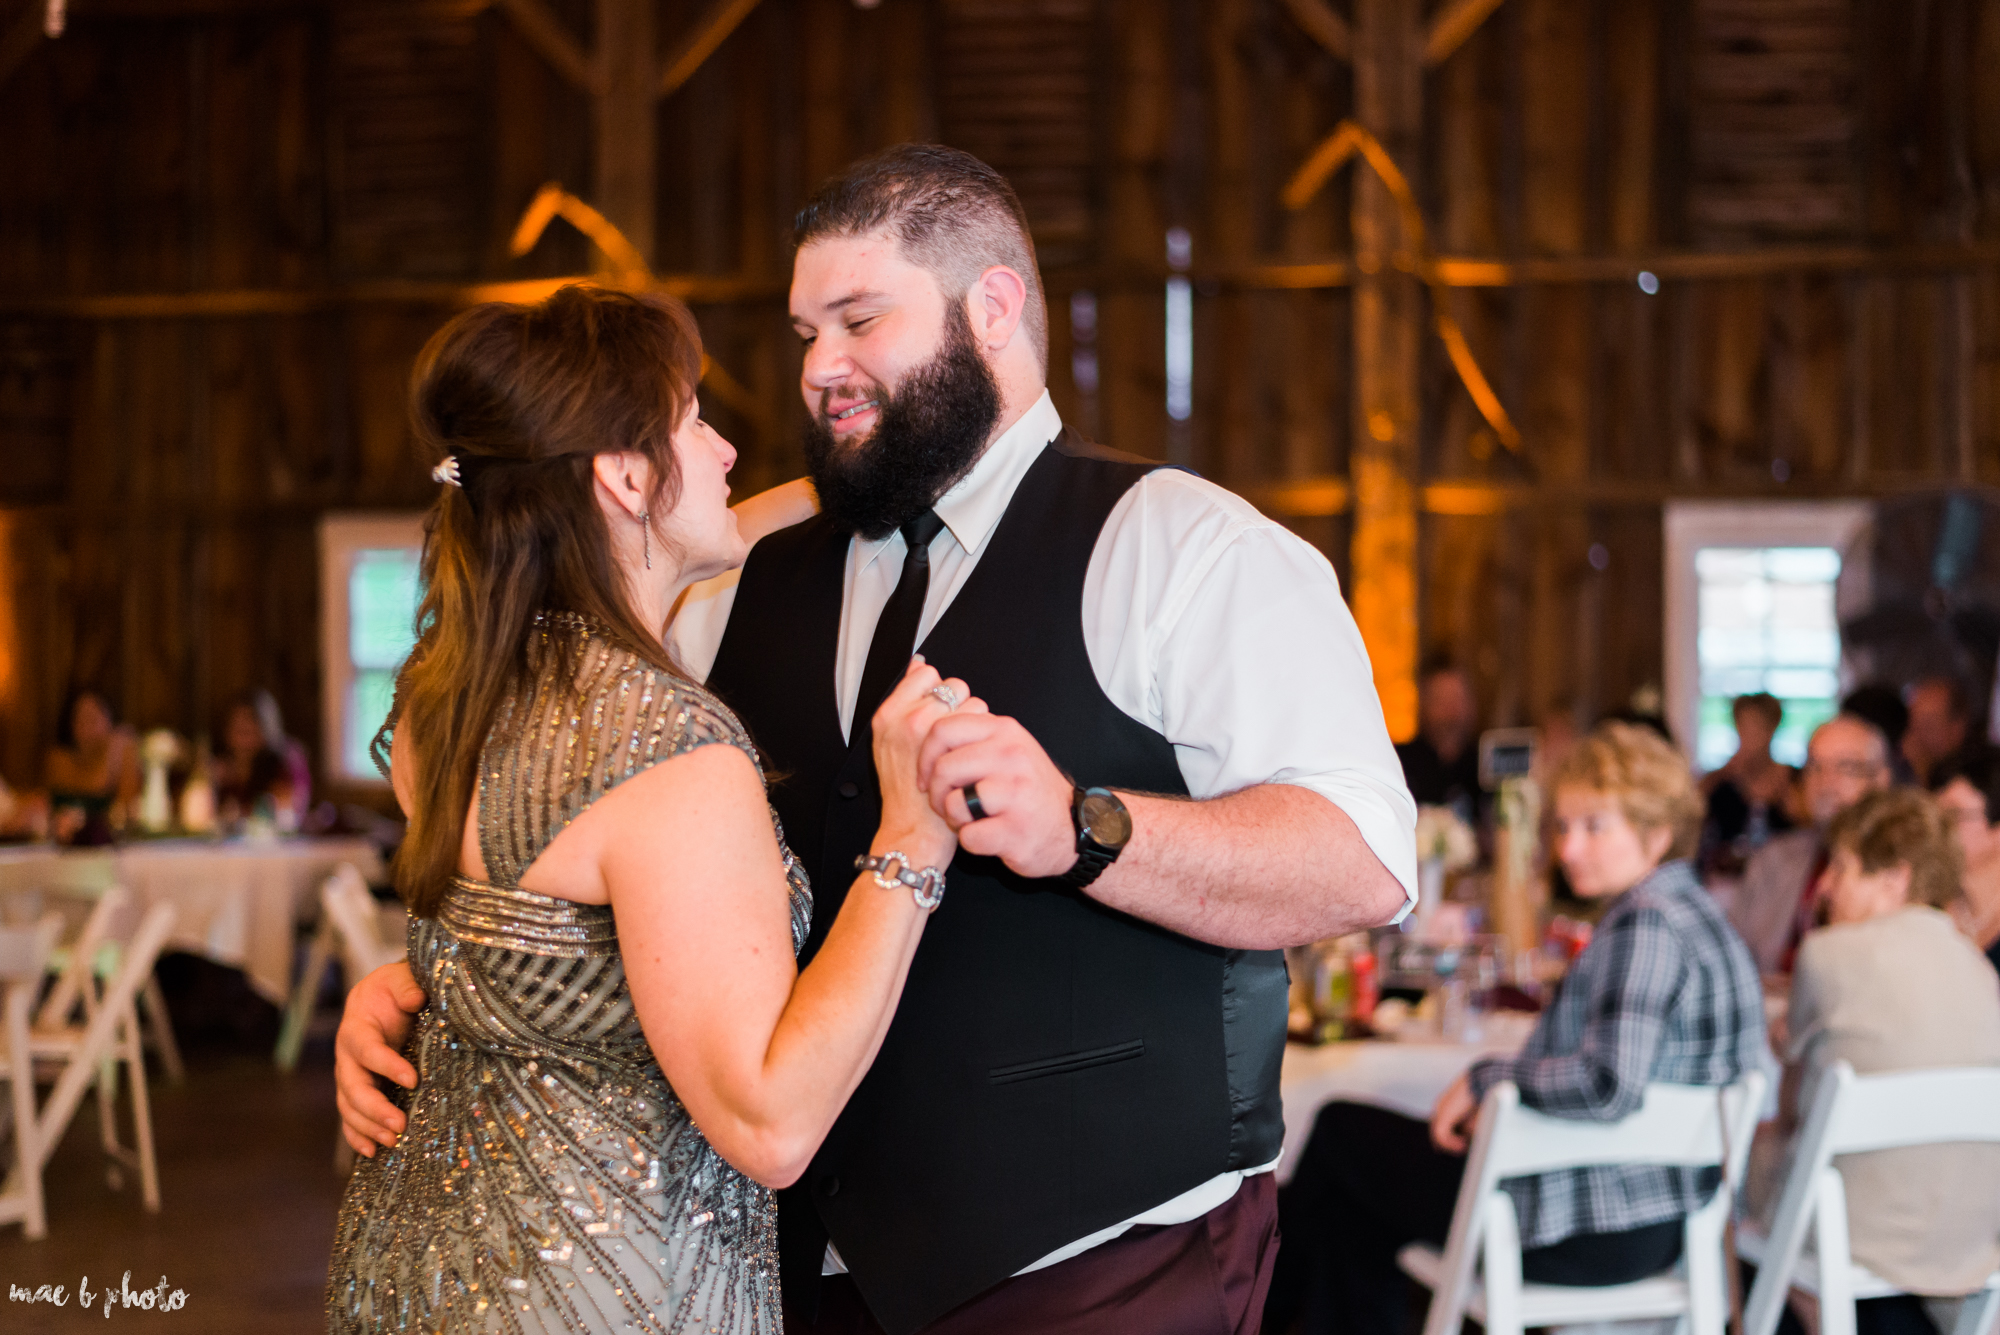 Amber & Kyle's Rustic Barn Wedding at SNPJ in Enon Valley, PA by Mae B Photo-95.jpg